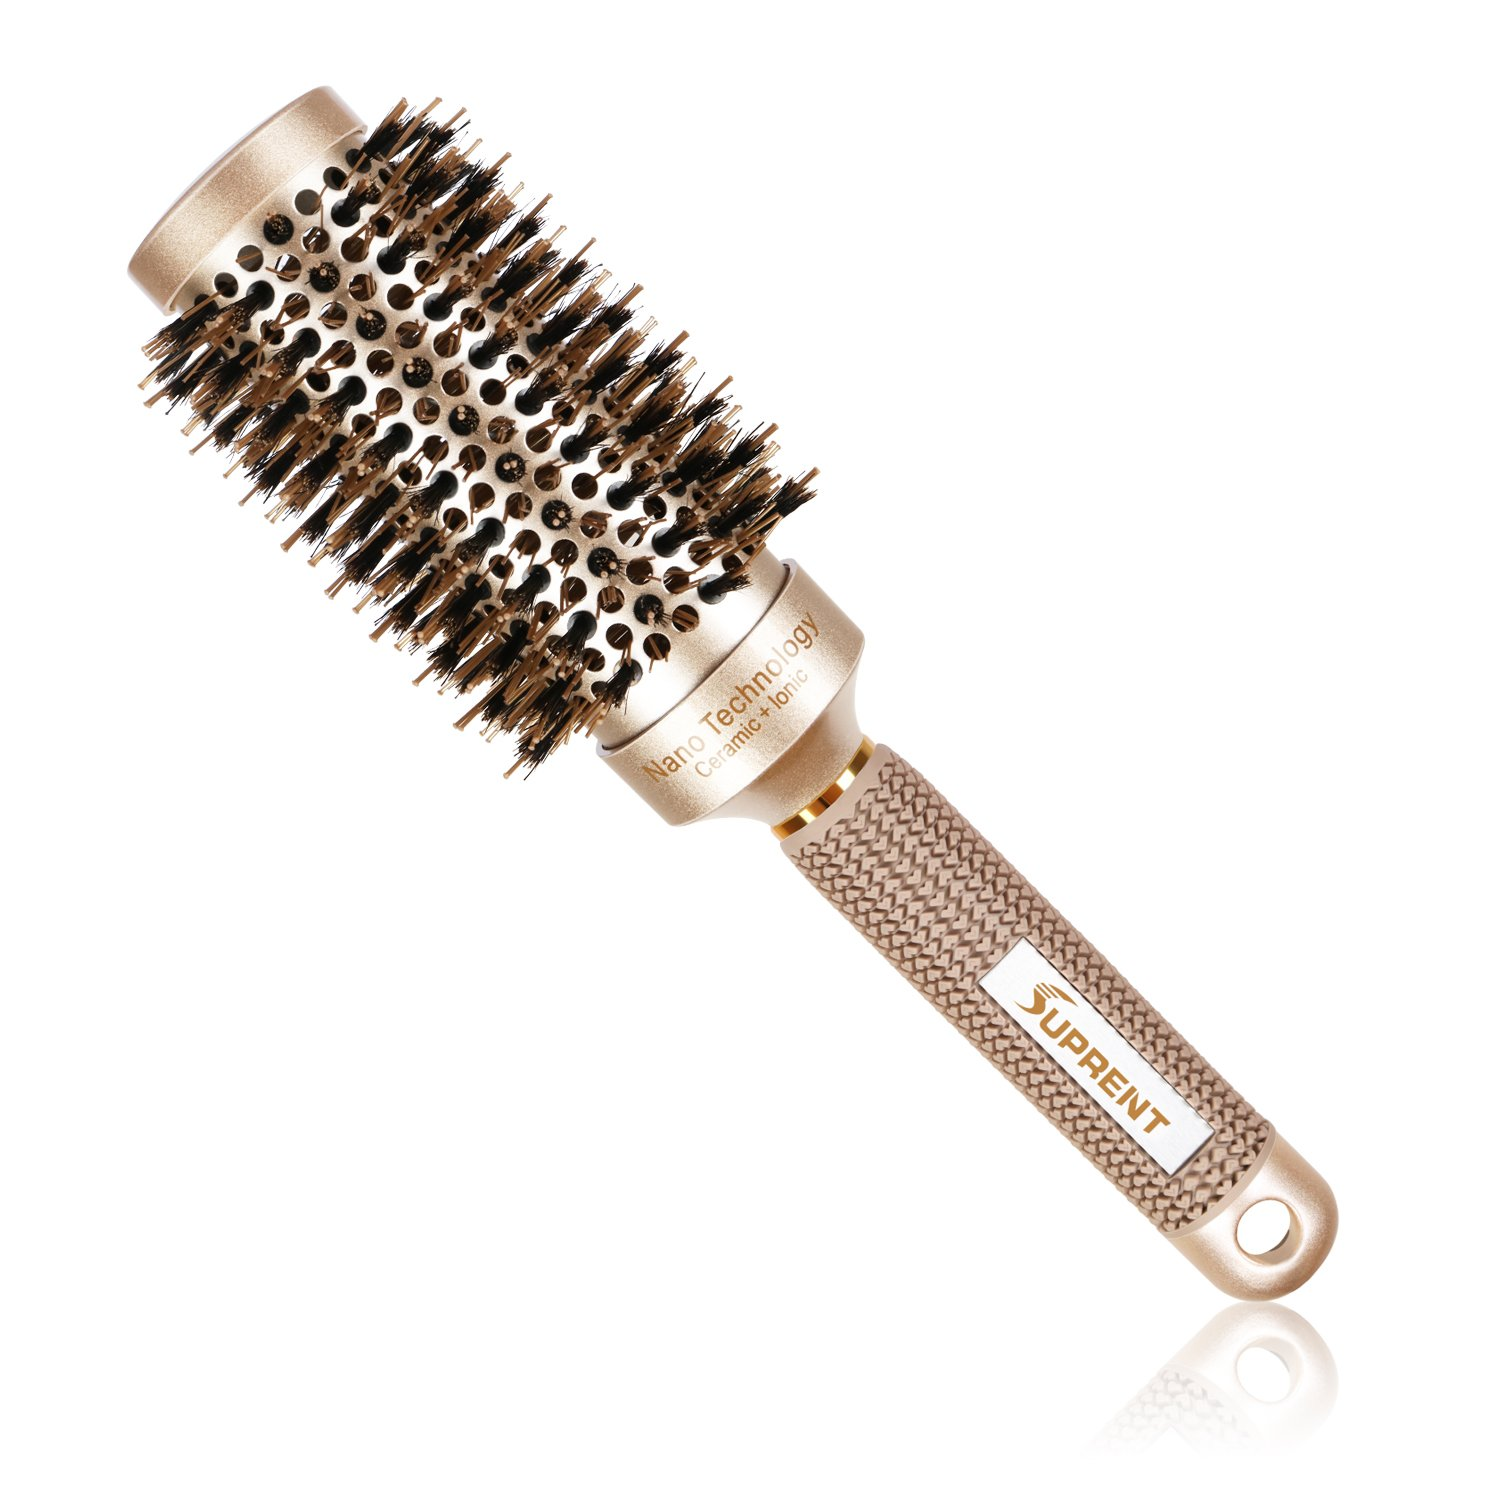 SUPRENT Nano Thermal Ceramic & Ionic Round Barrel Hair Brush with Boar Bristle, 1.8 inch, for Hair Drying, Styling, Curling, Adding Hair Volume and Shine, Gold Color(1.8 inch)